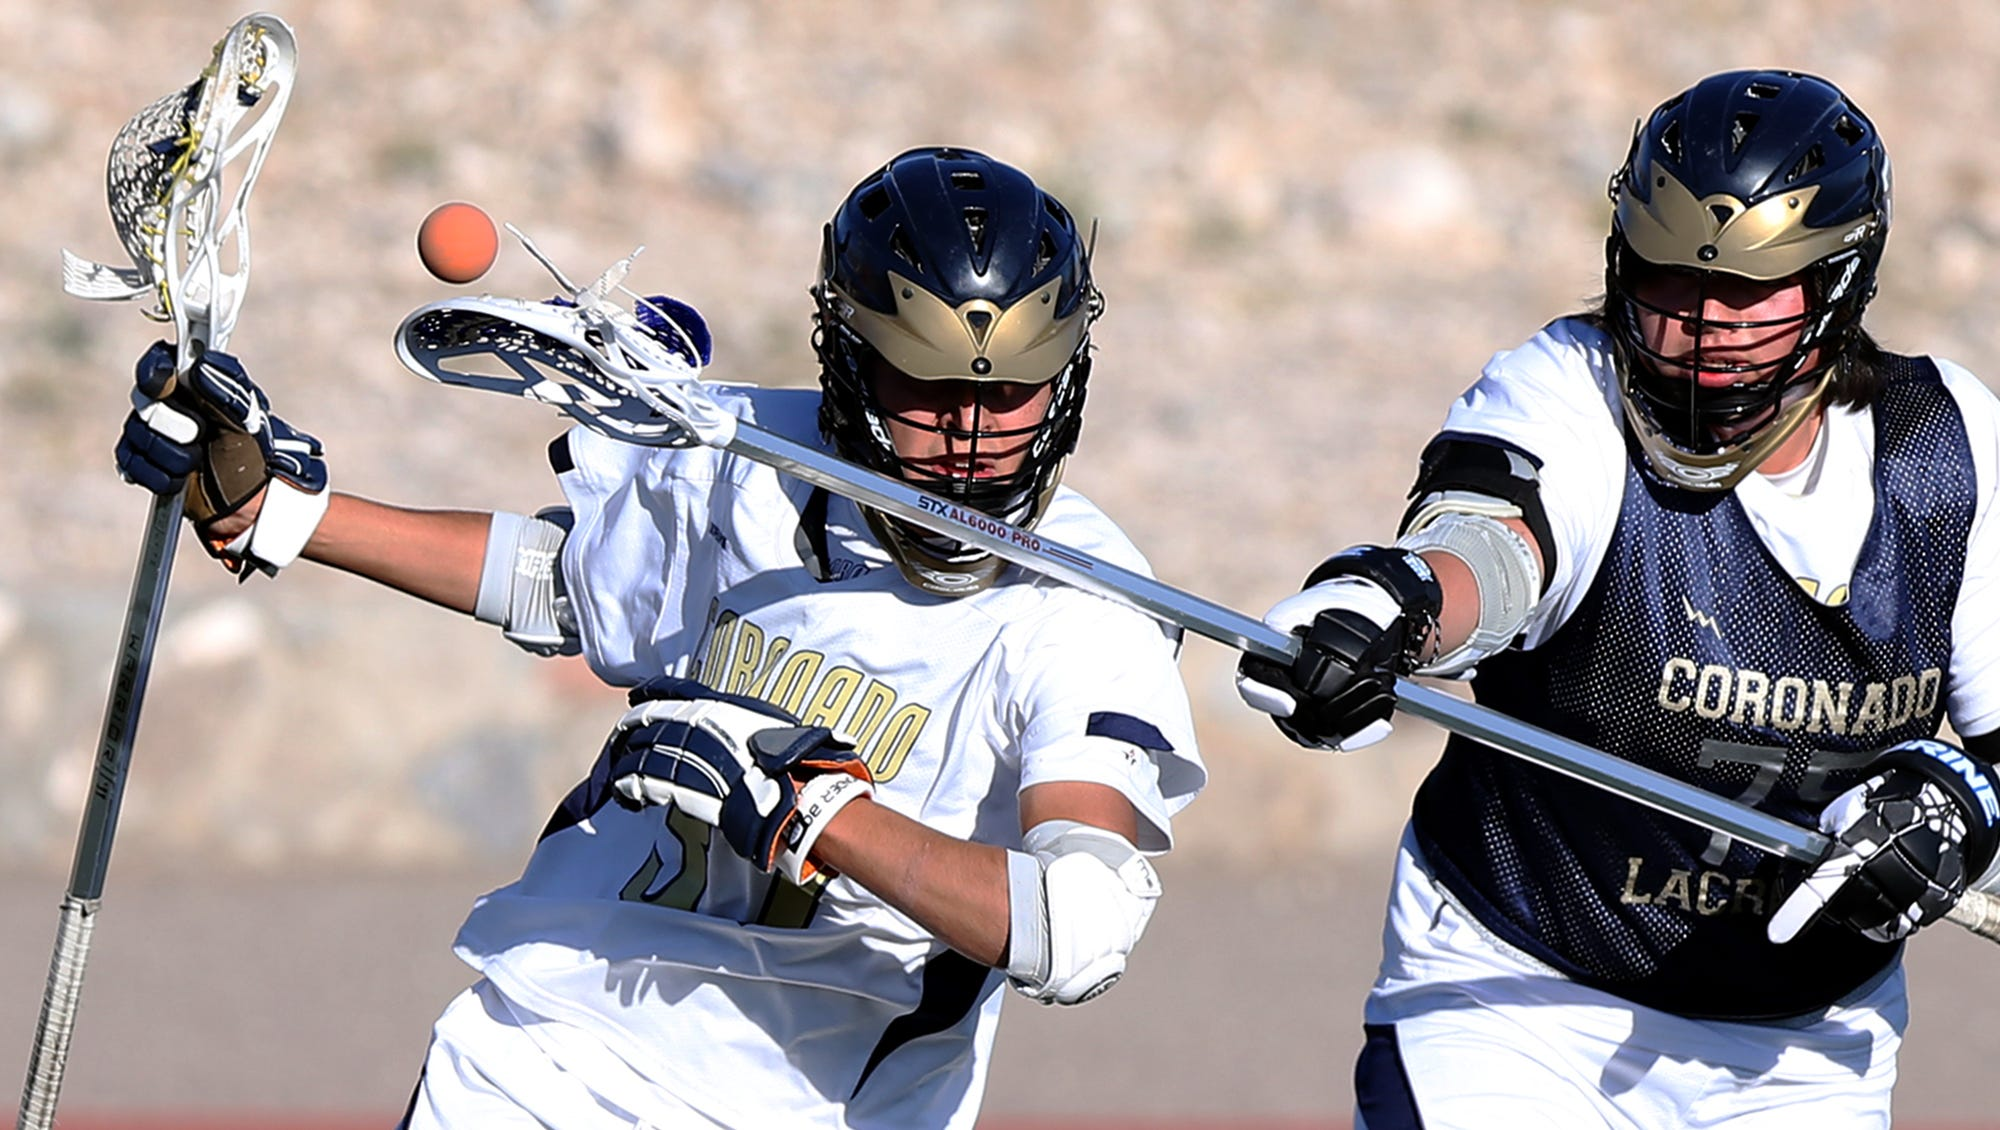 Young Coronado Lacrosse Fights For Playoff Spot People who liked joshua gomez's feet, also liked young coronado lacrosse fights for